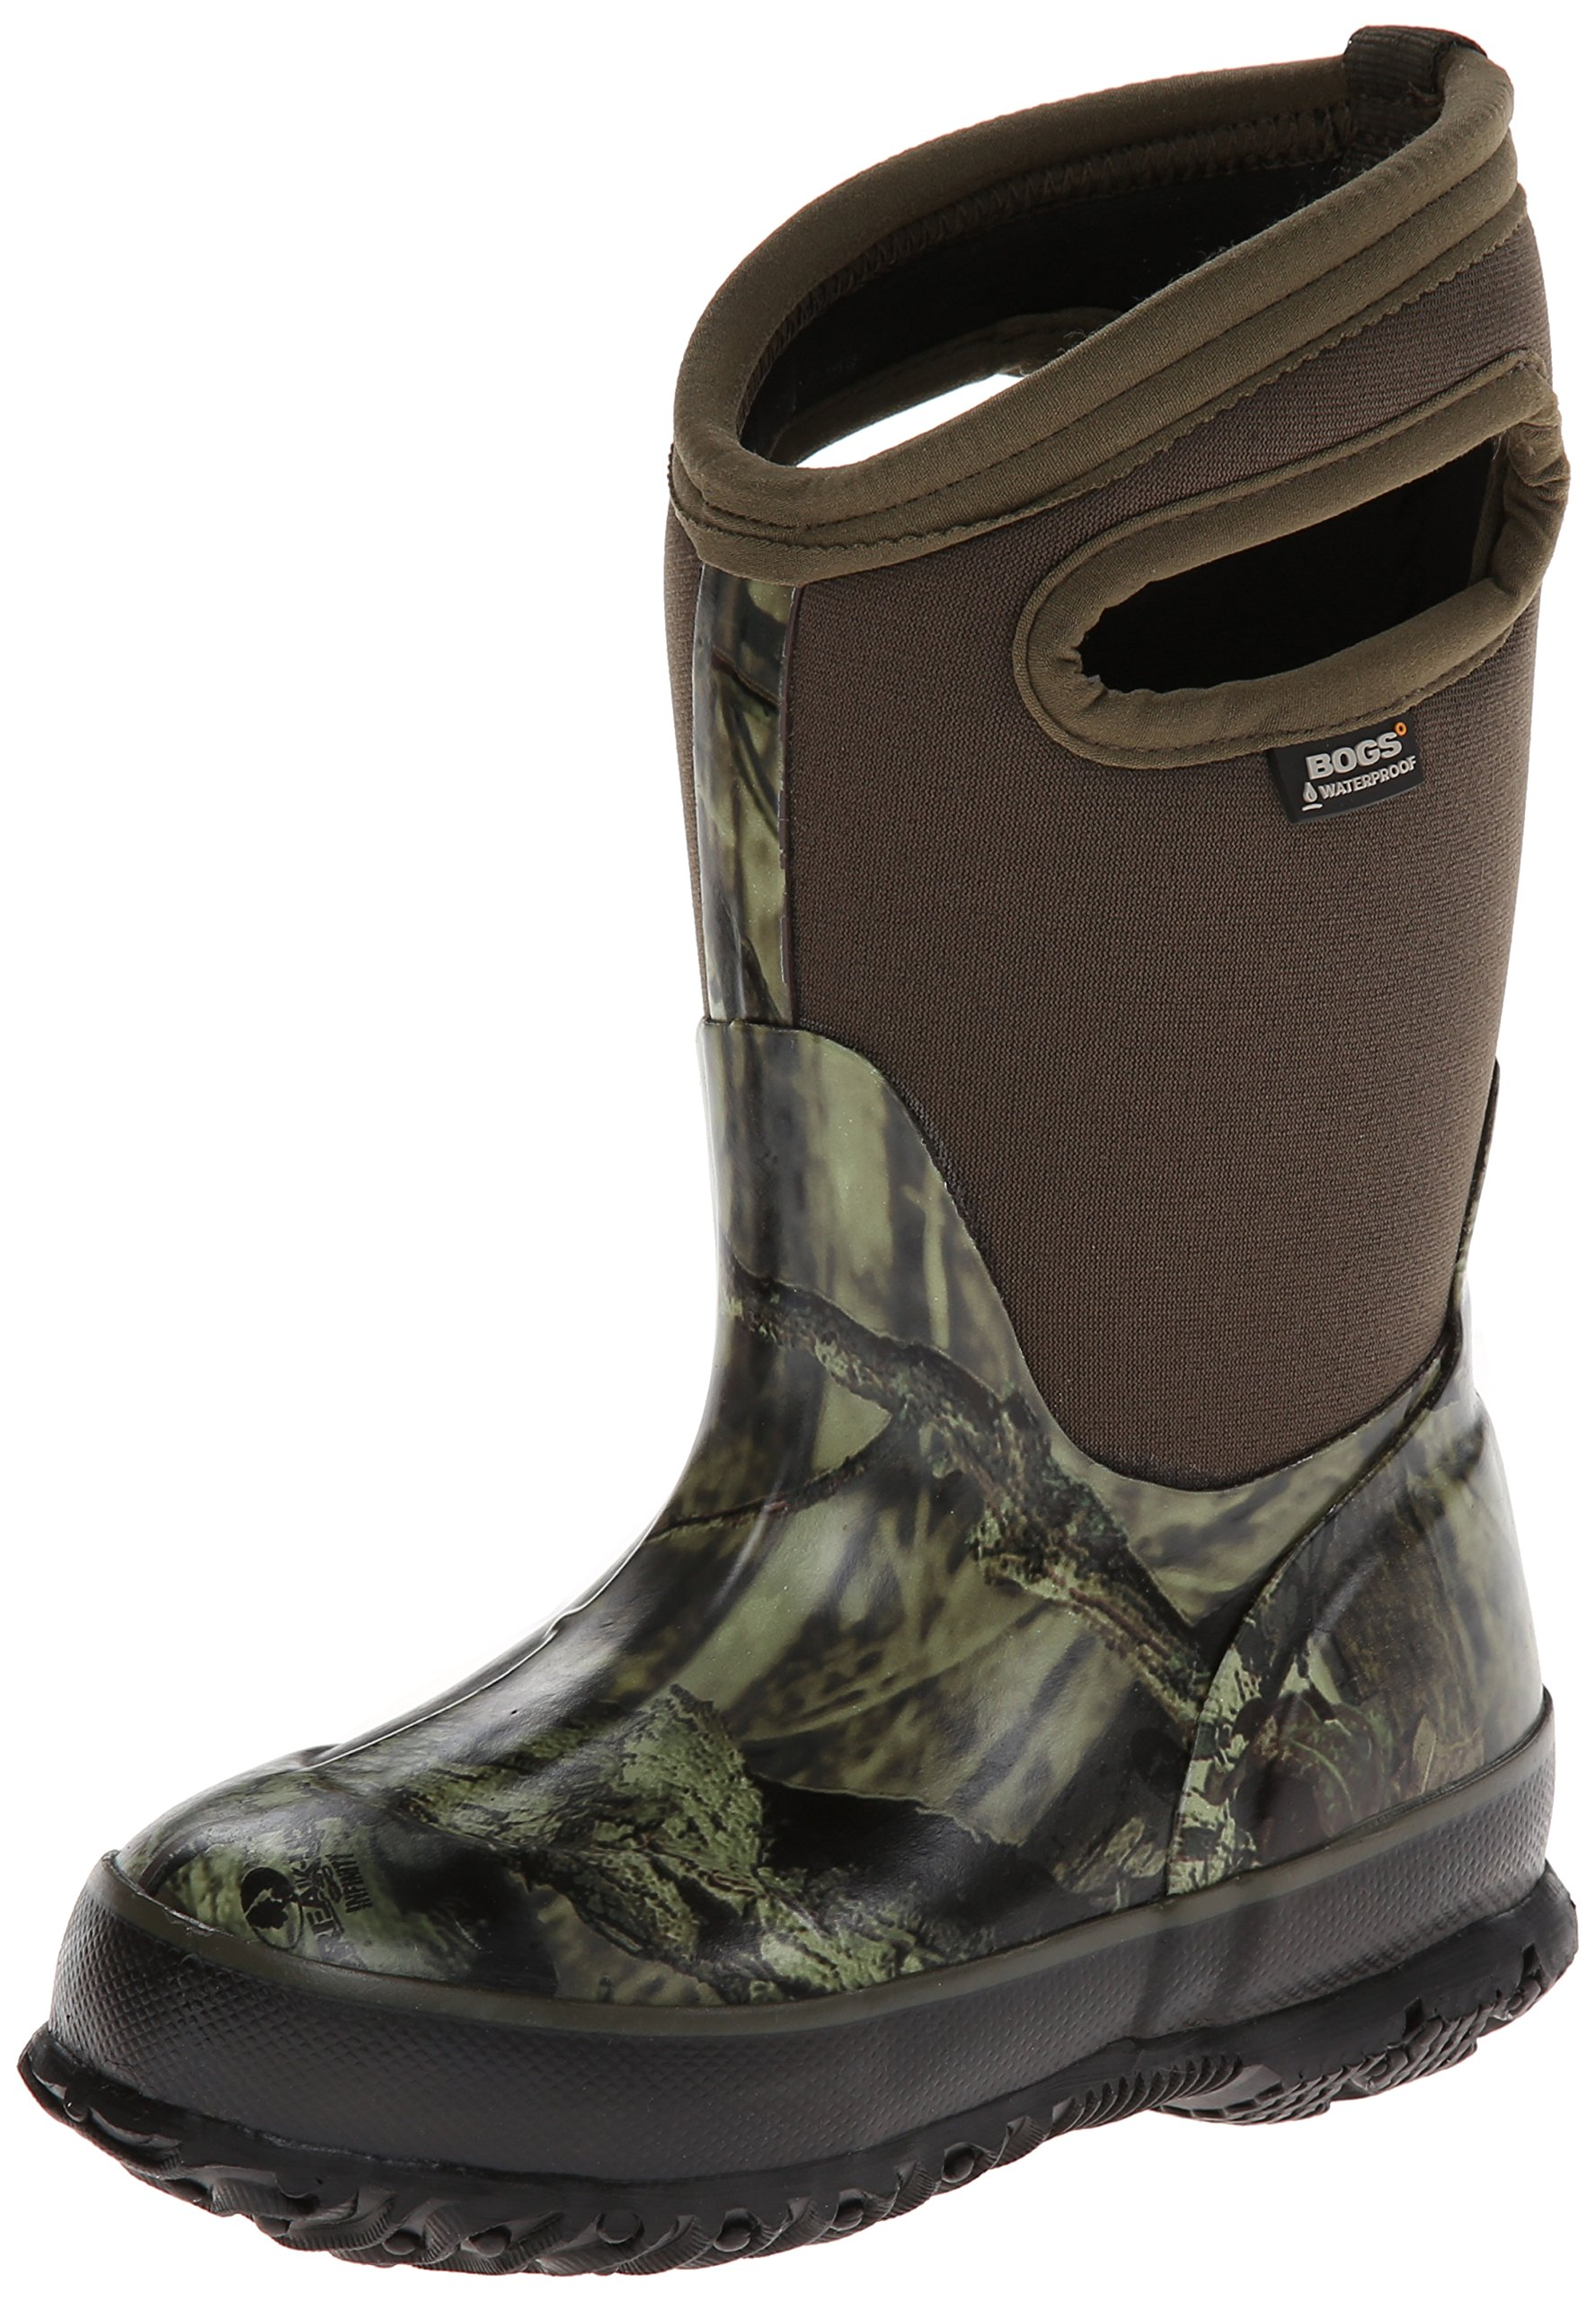 Bogs Classic High Waterproof Insulated Rubber Neoprene Rain Boot Snow, Camo Mossy Oak/Green/Multi, 4 M US Big Kid